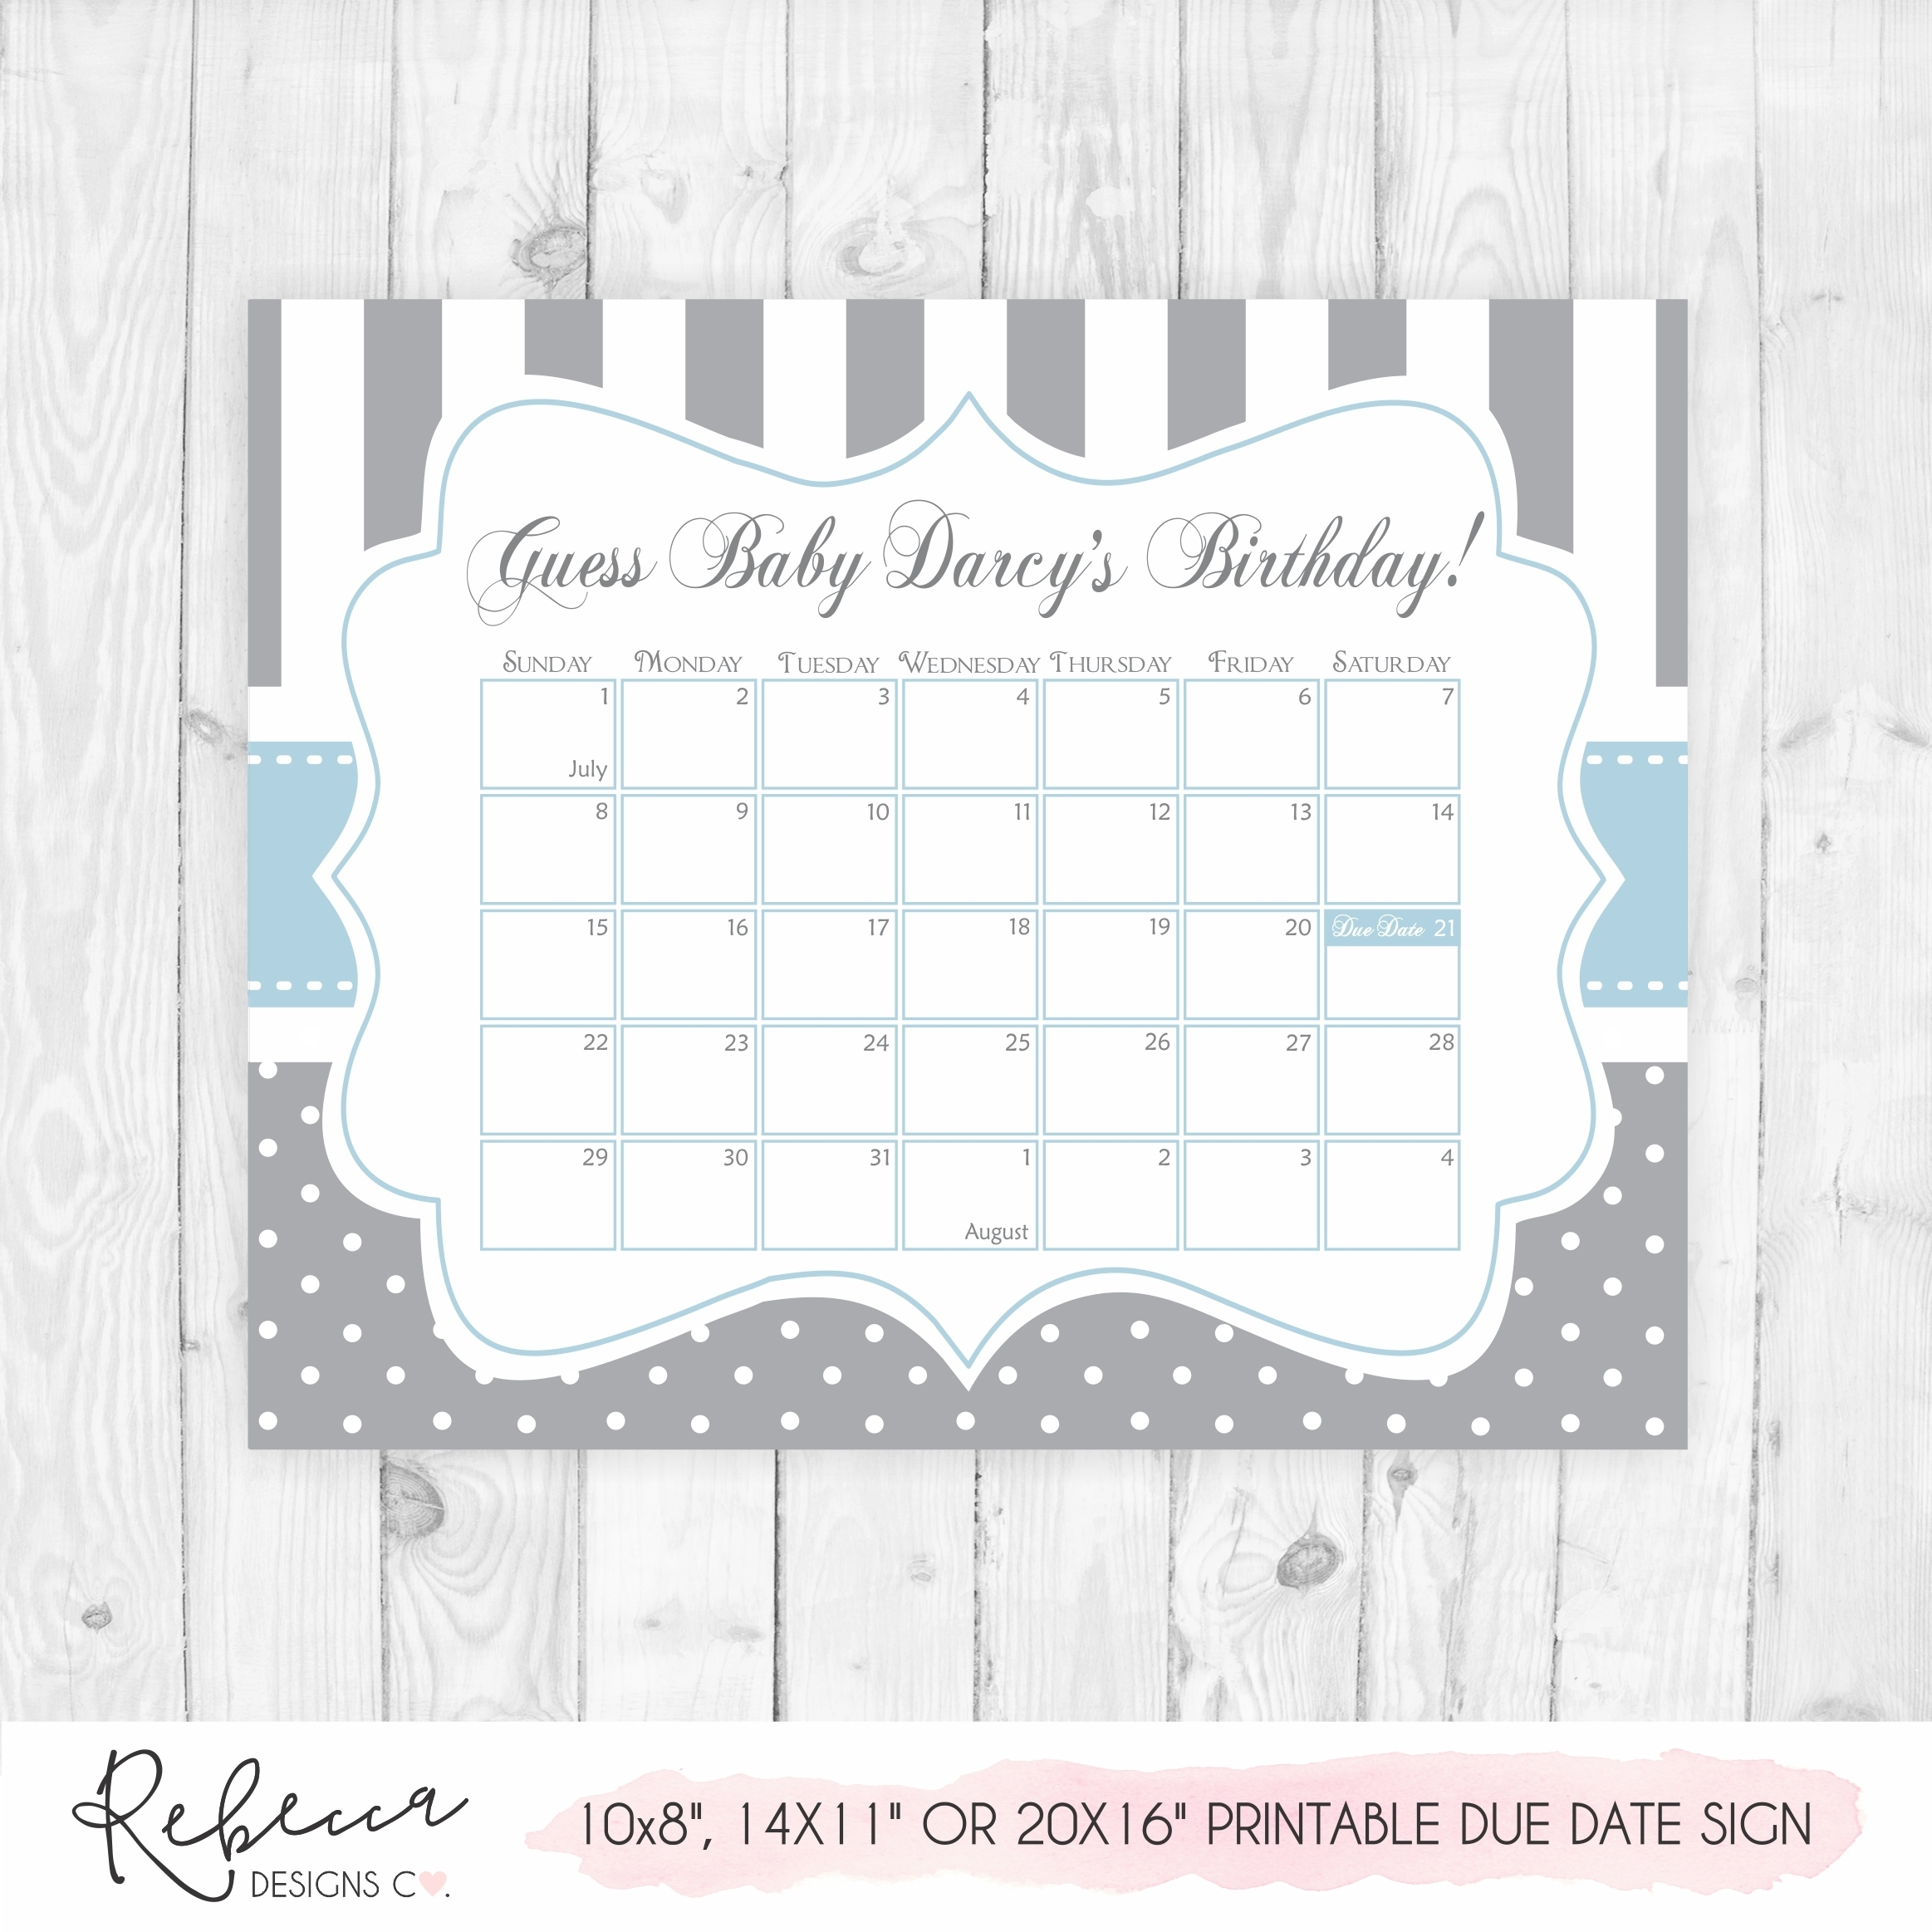 Guess The Date Game Sign • Printable Custom Design